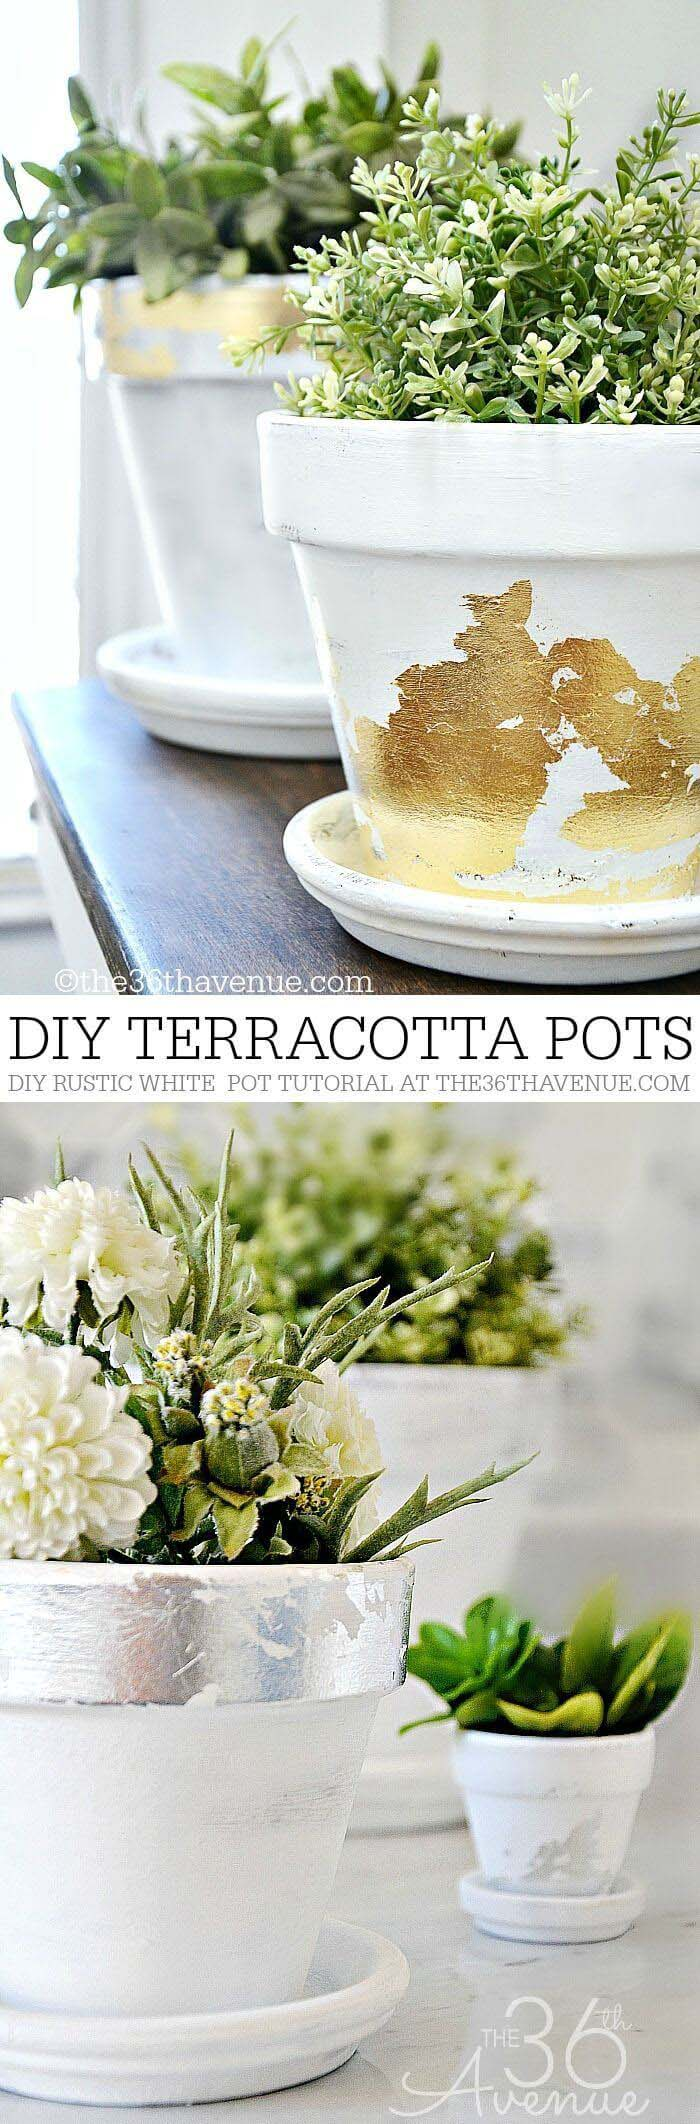 Two Ways to Dress Up Classic Clay #diy #flowerpot #garden #flower #decorhomeideas